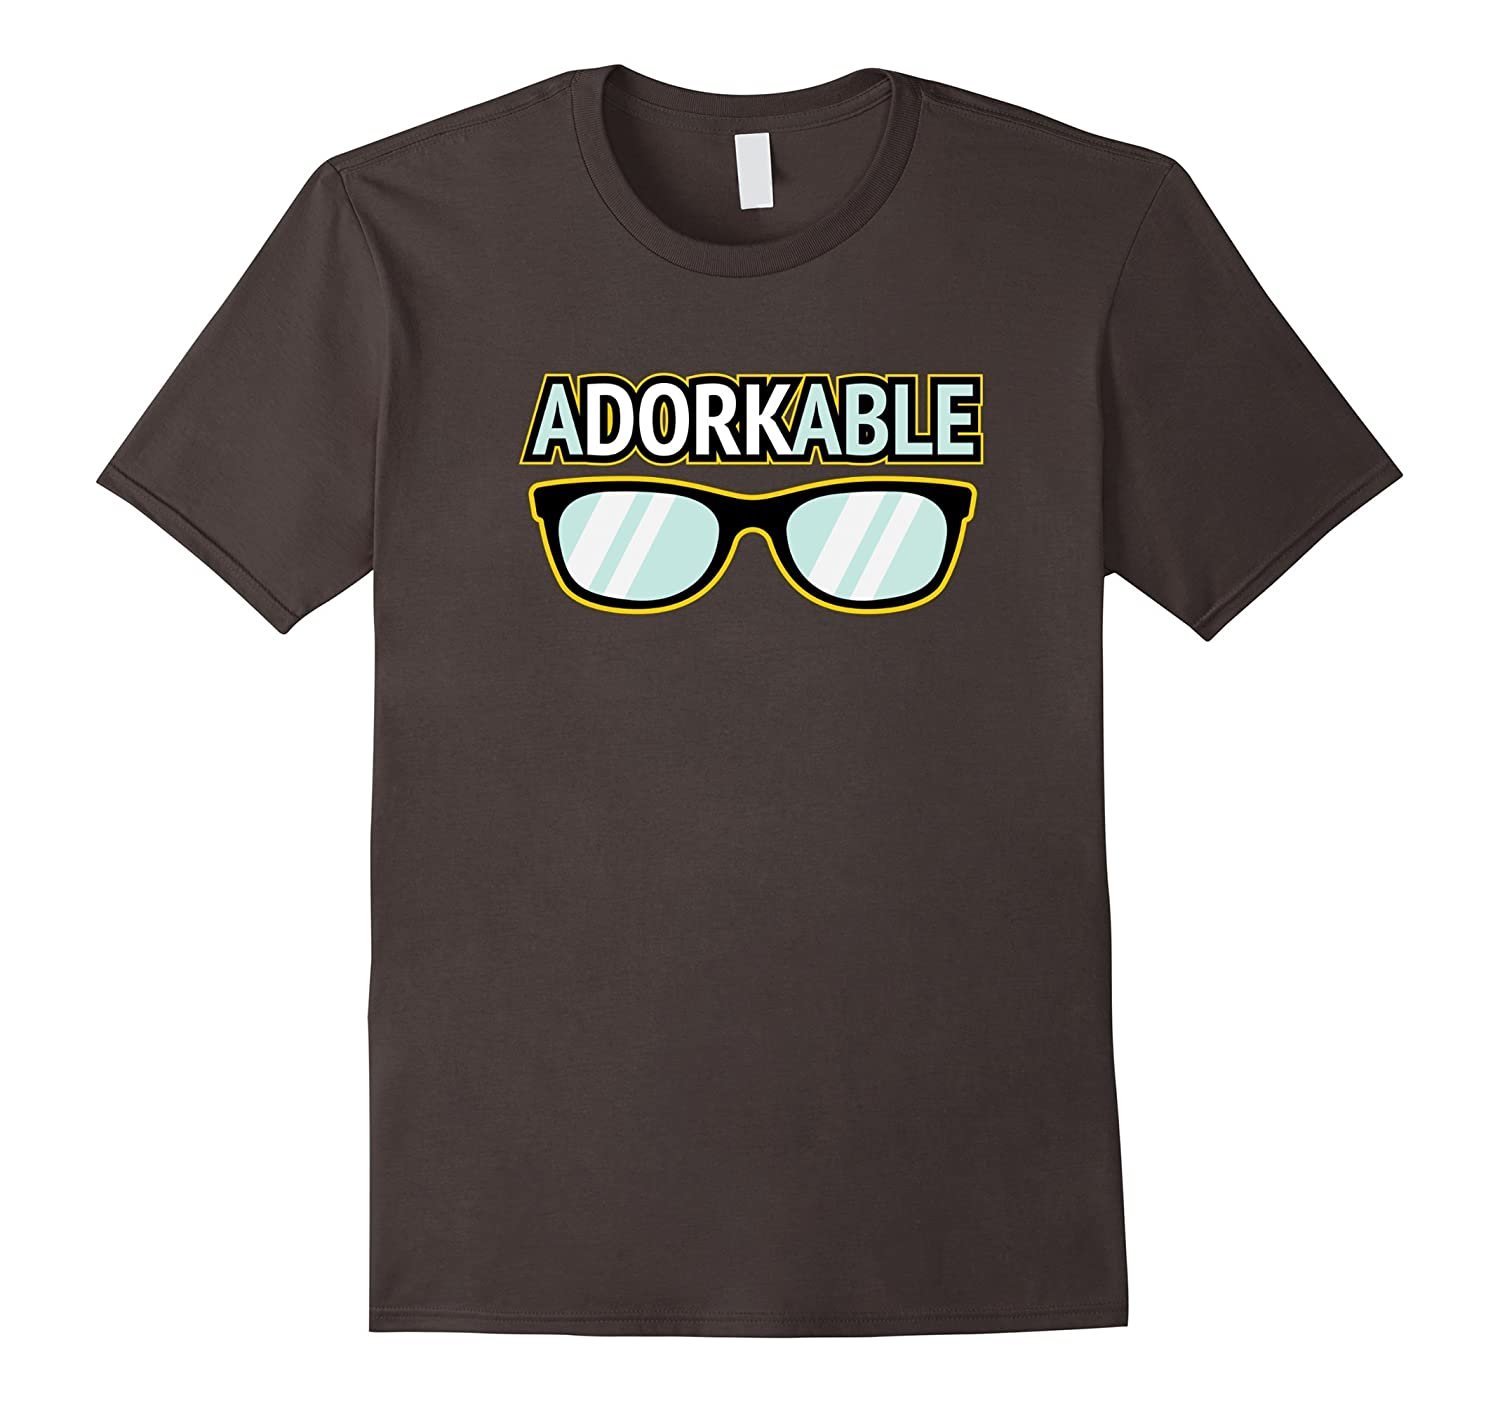 Adorkable Glasses T-shirt - Perfect Tee For Nerds, Geeks-Art